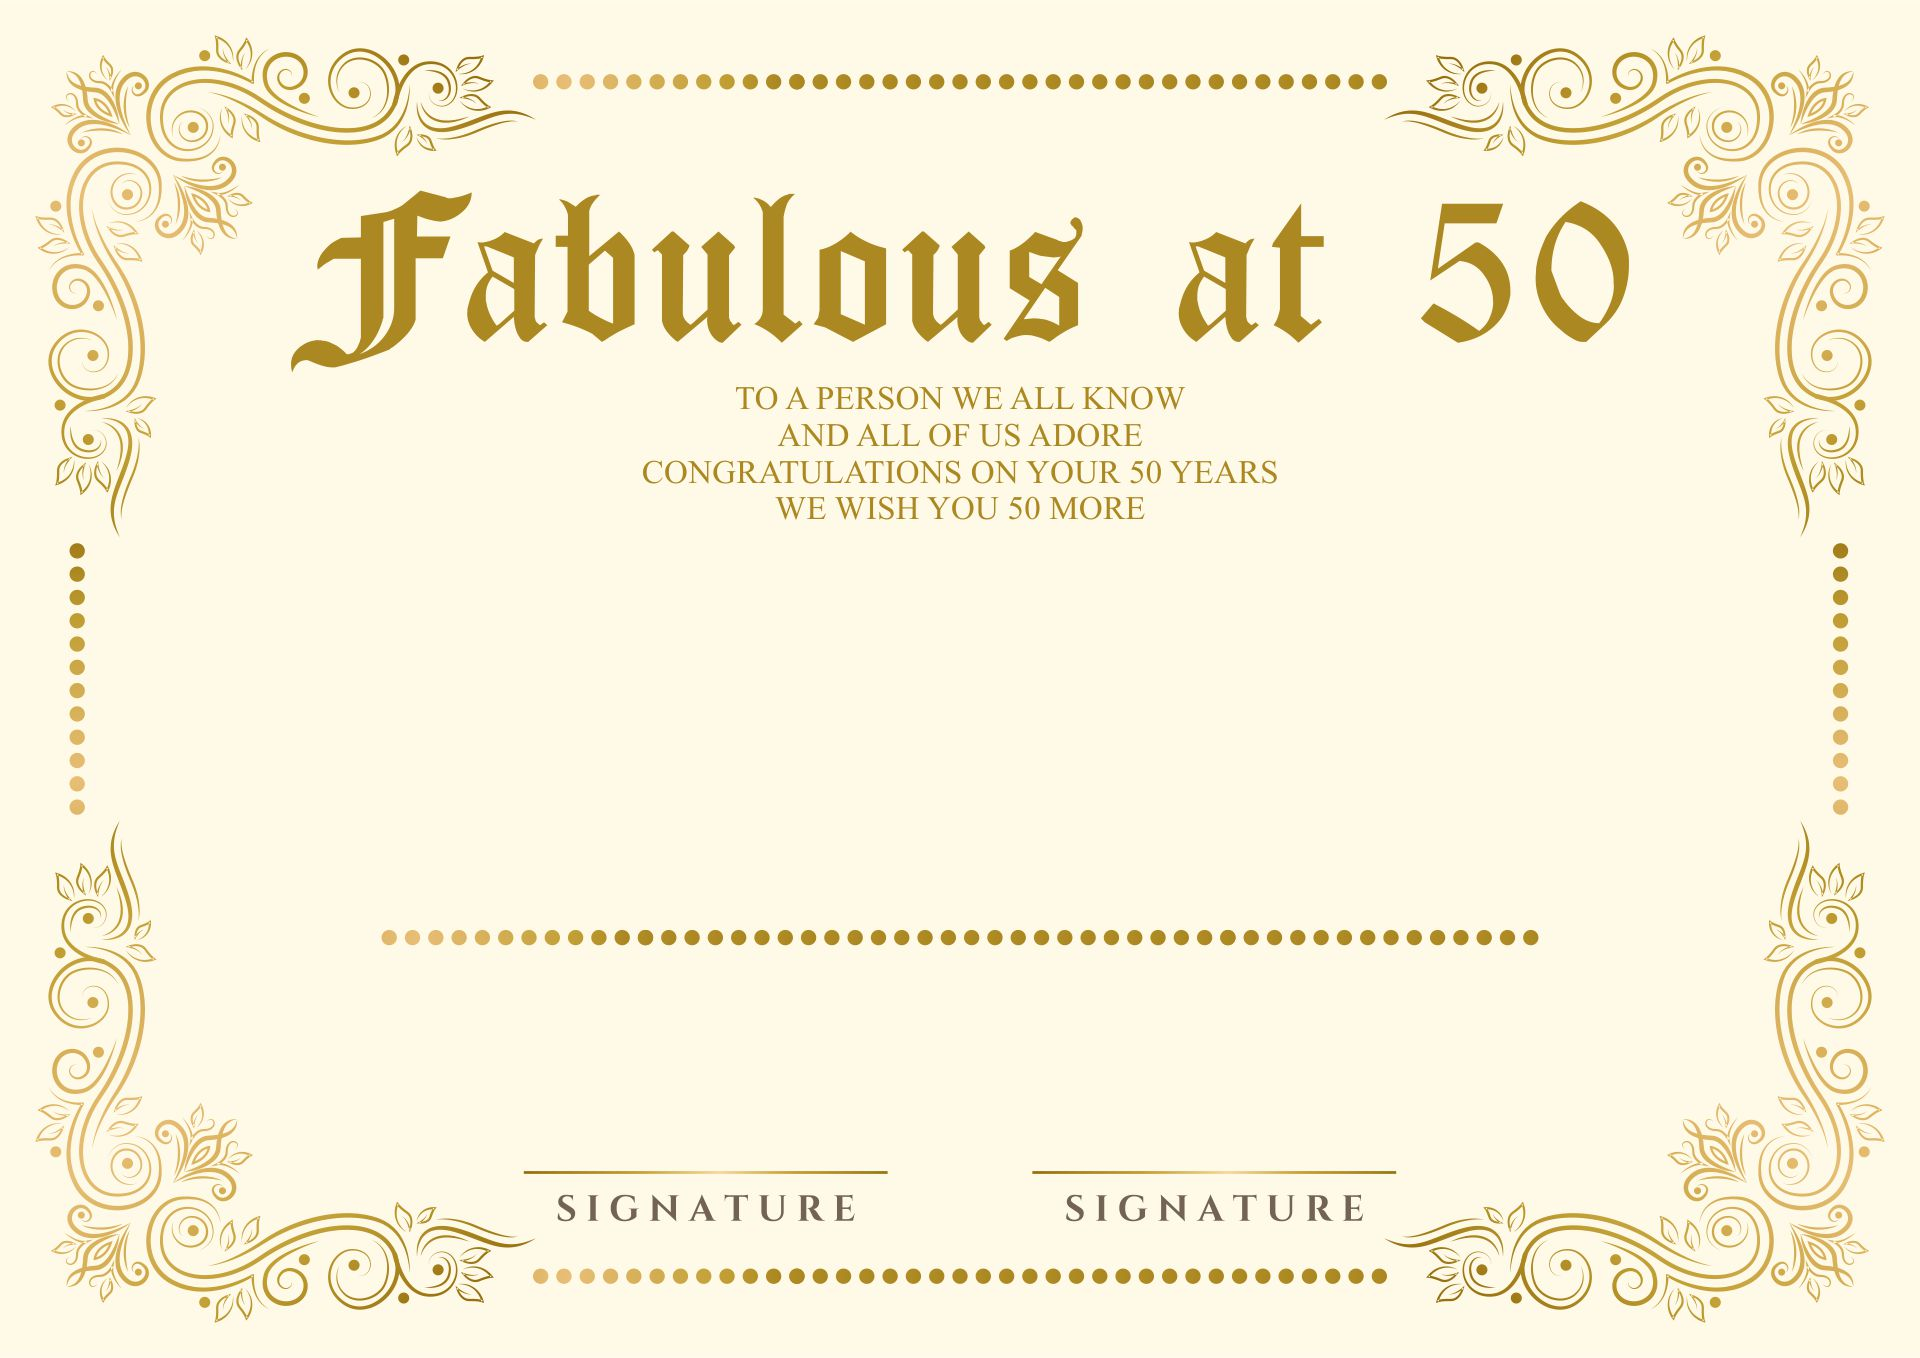 9 Images of 50th Birthday Certificate Printable